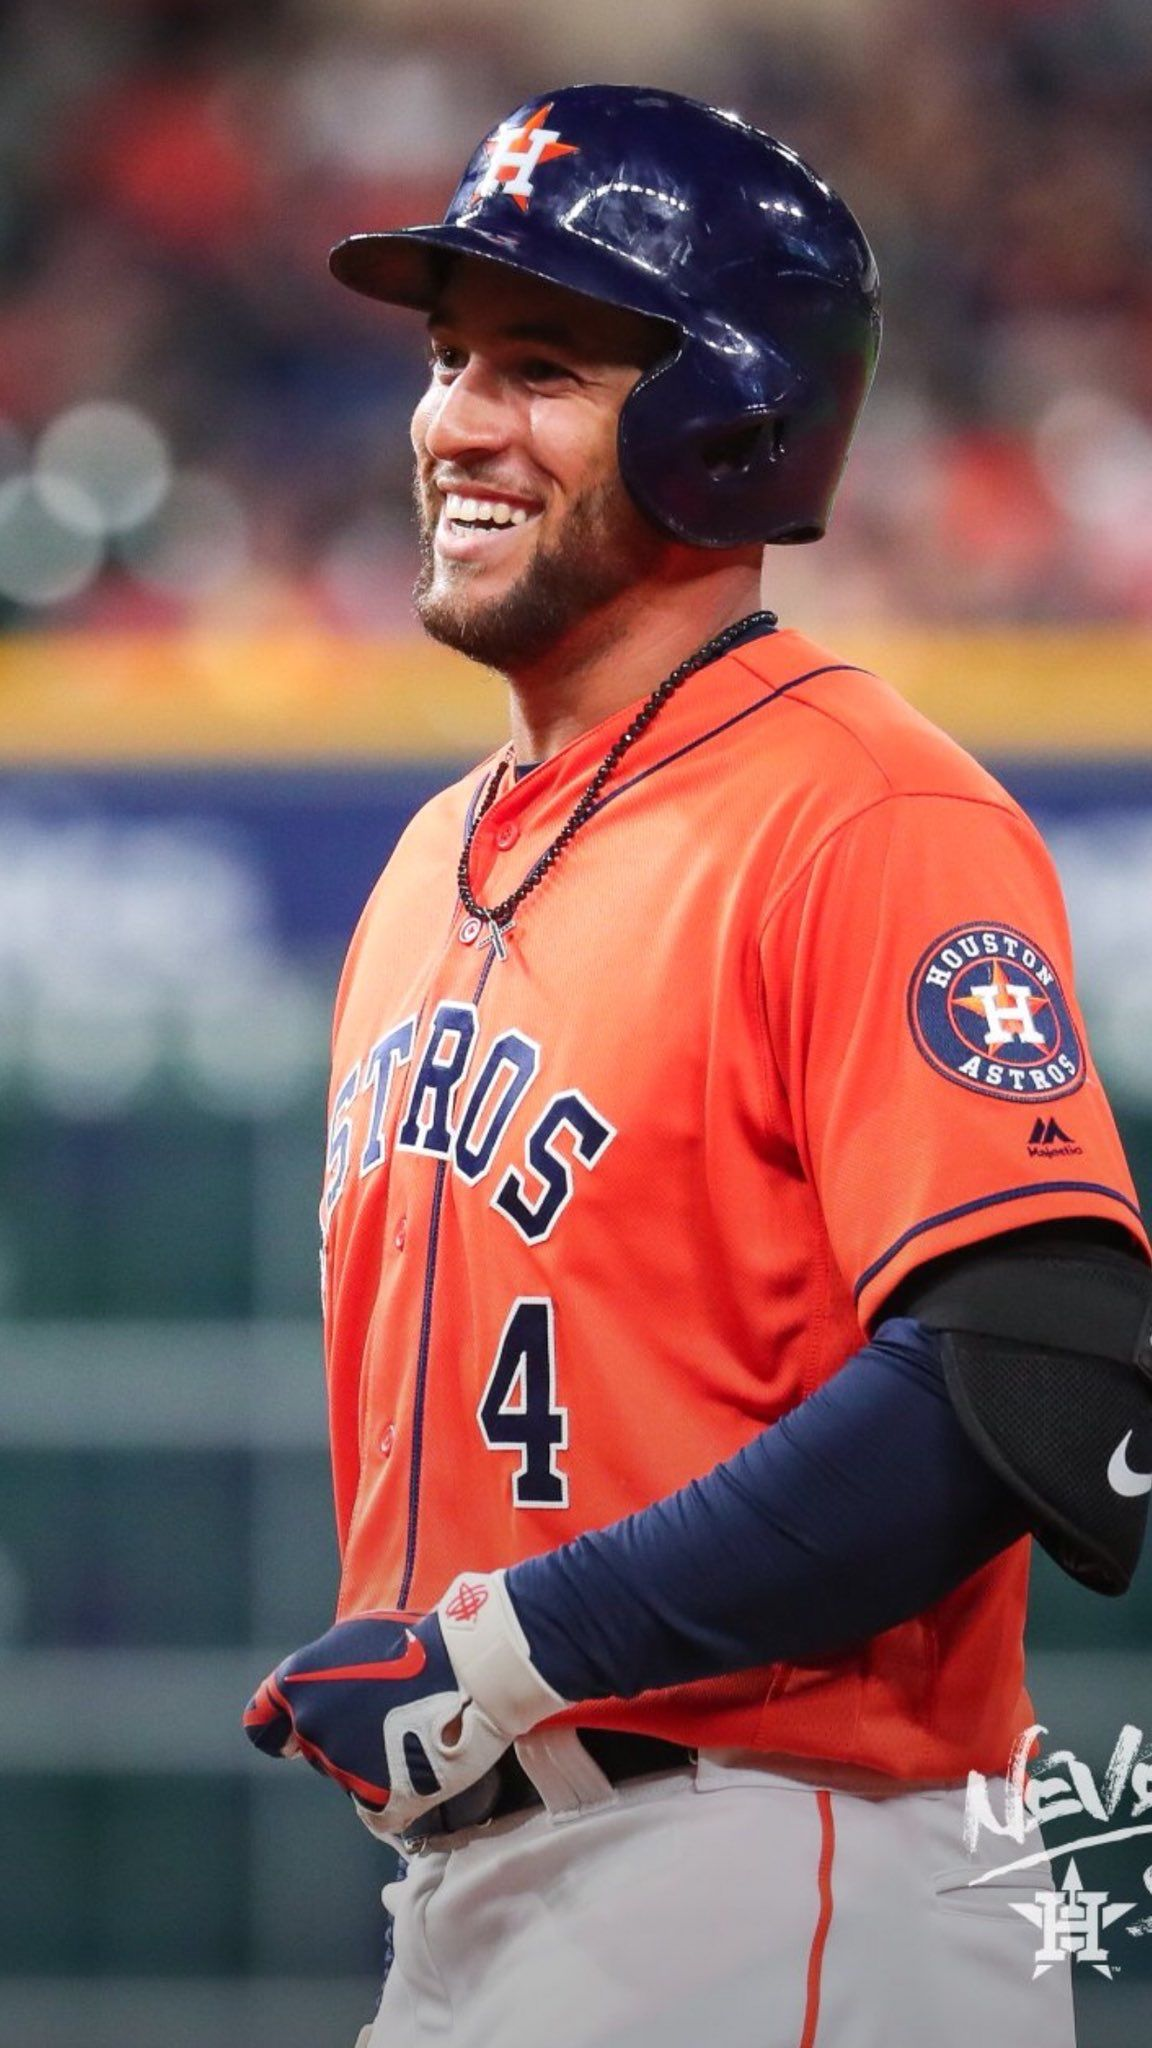 Springer springer, Houston astros